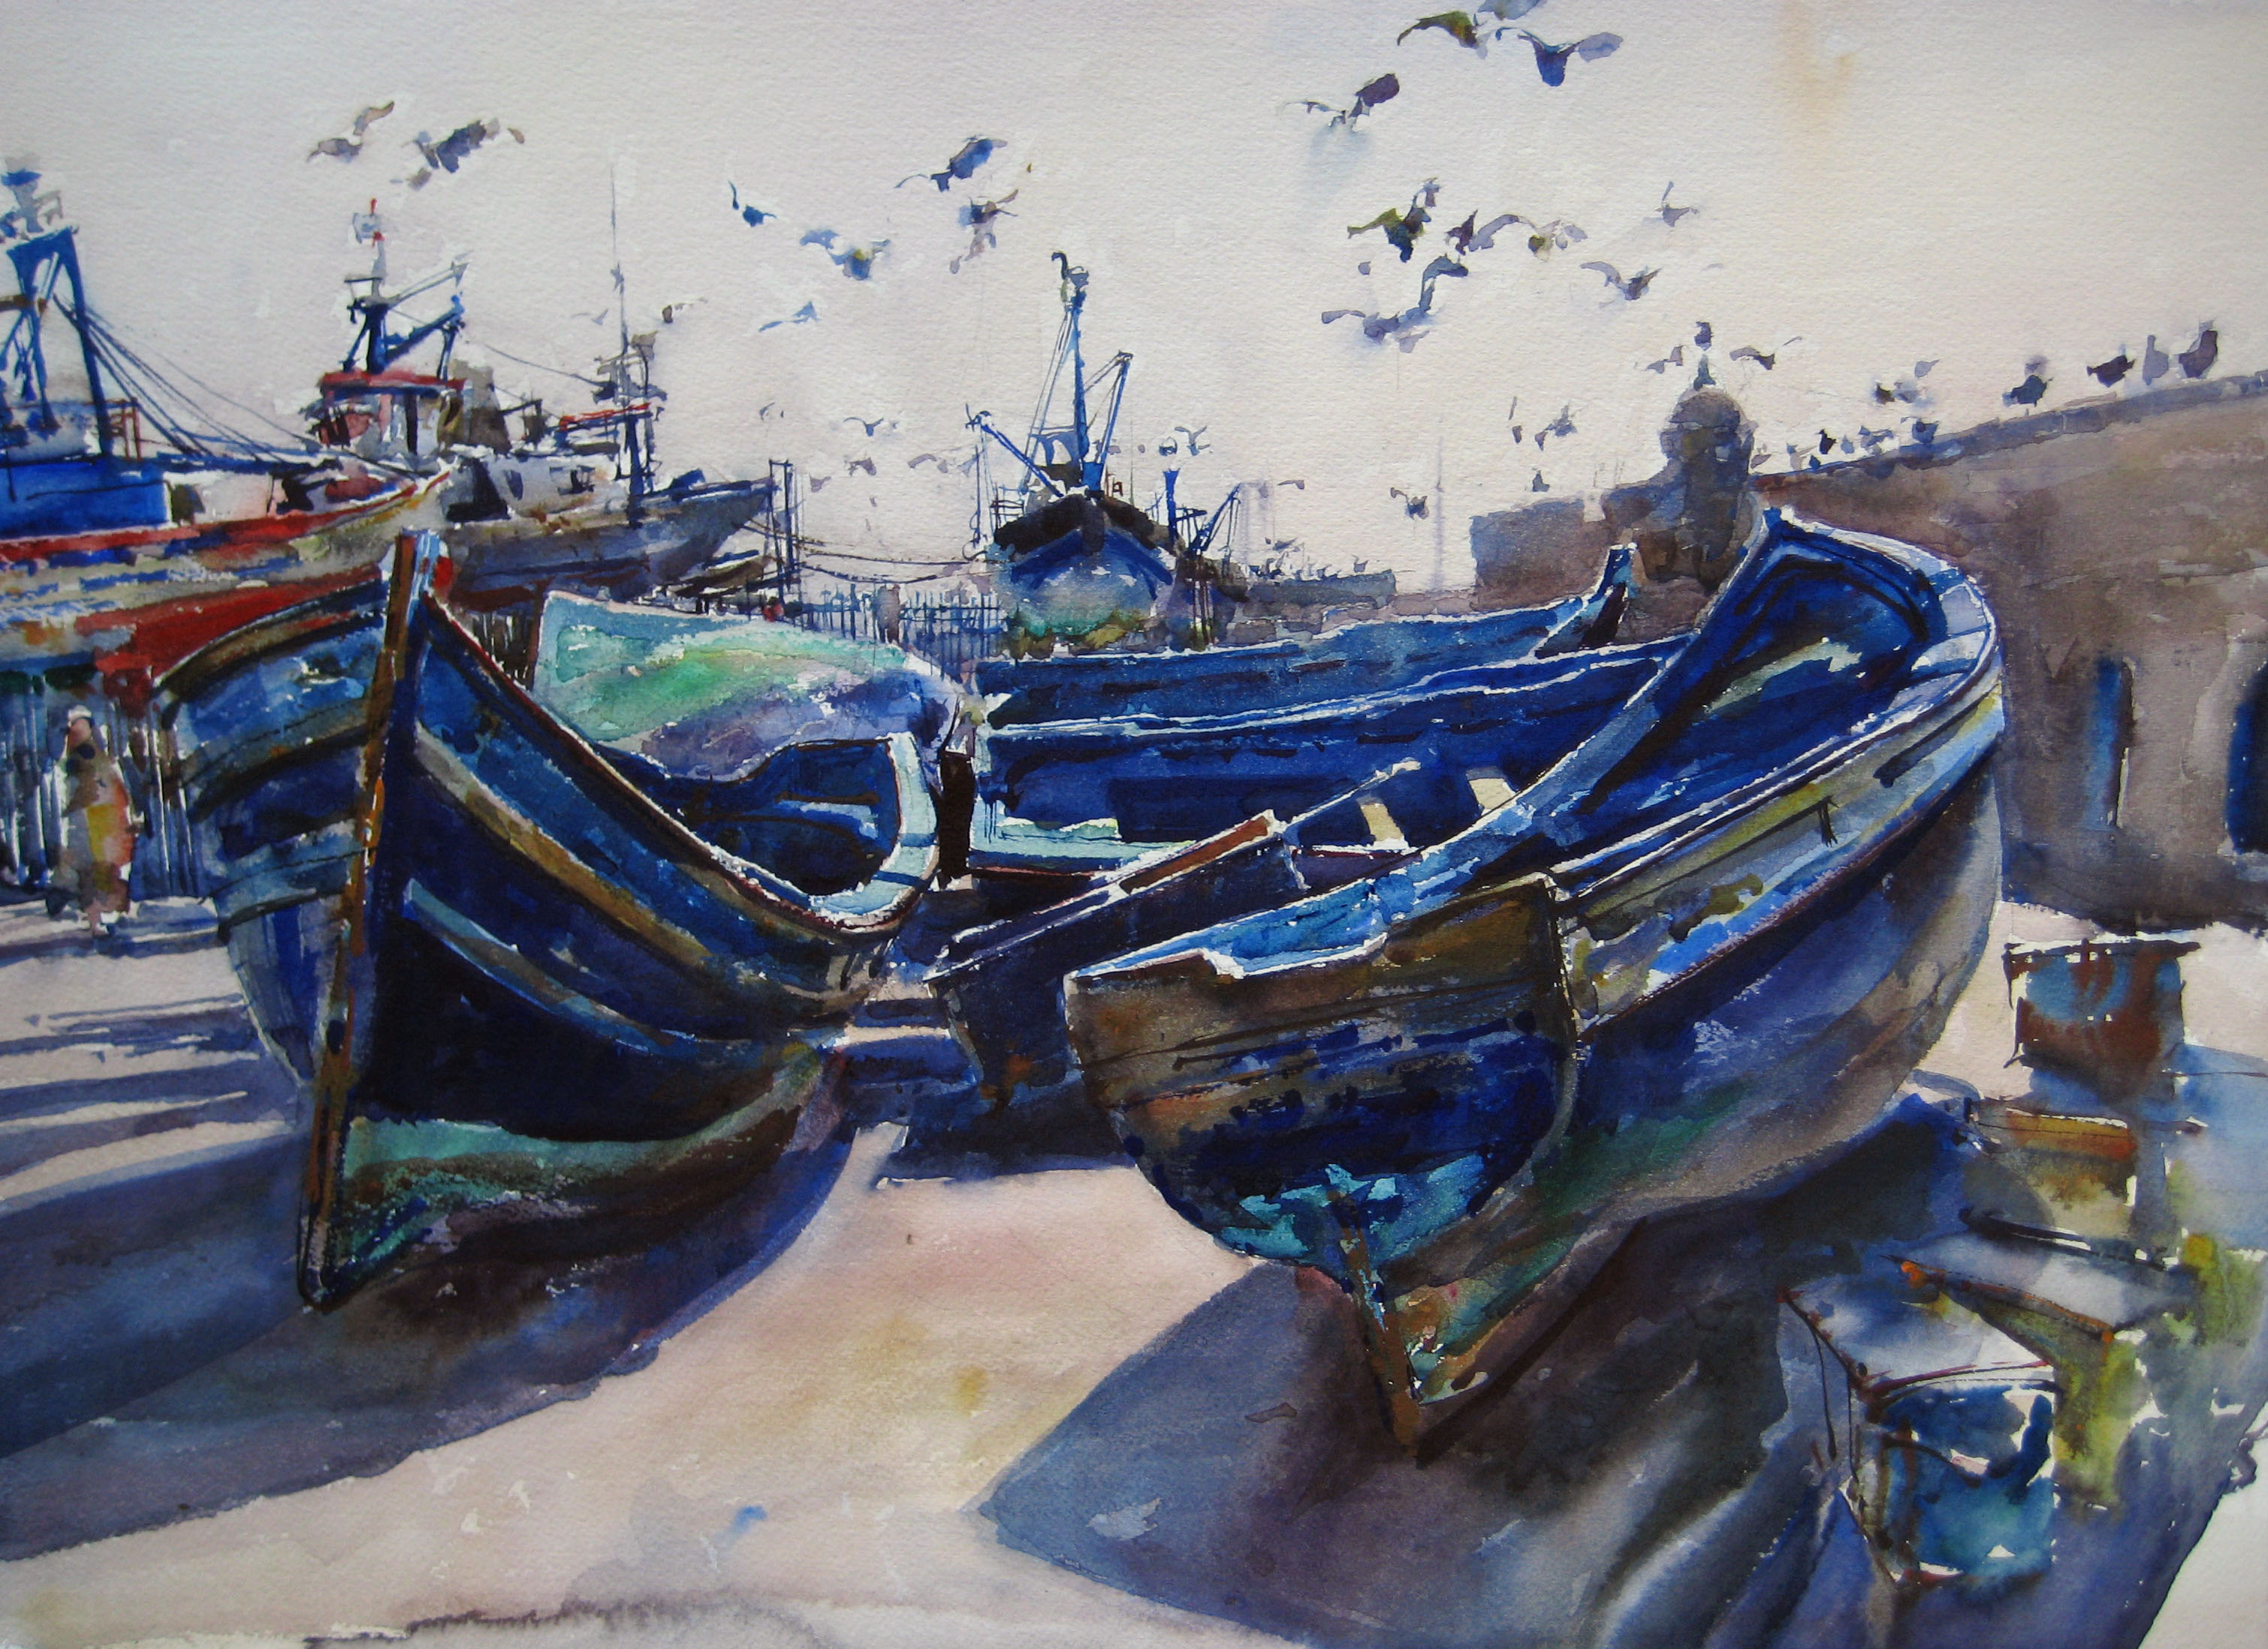 Birds and Boats by  Daud Akhriev - Masterpiece Online